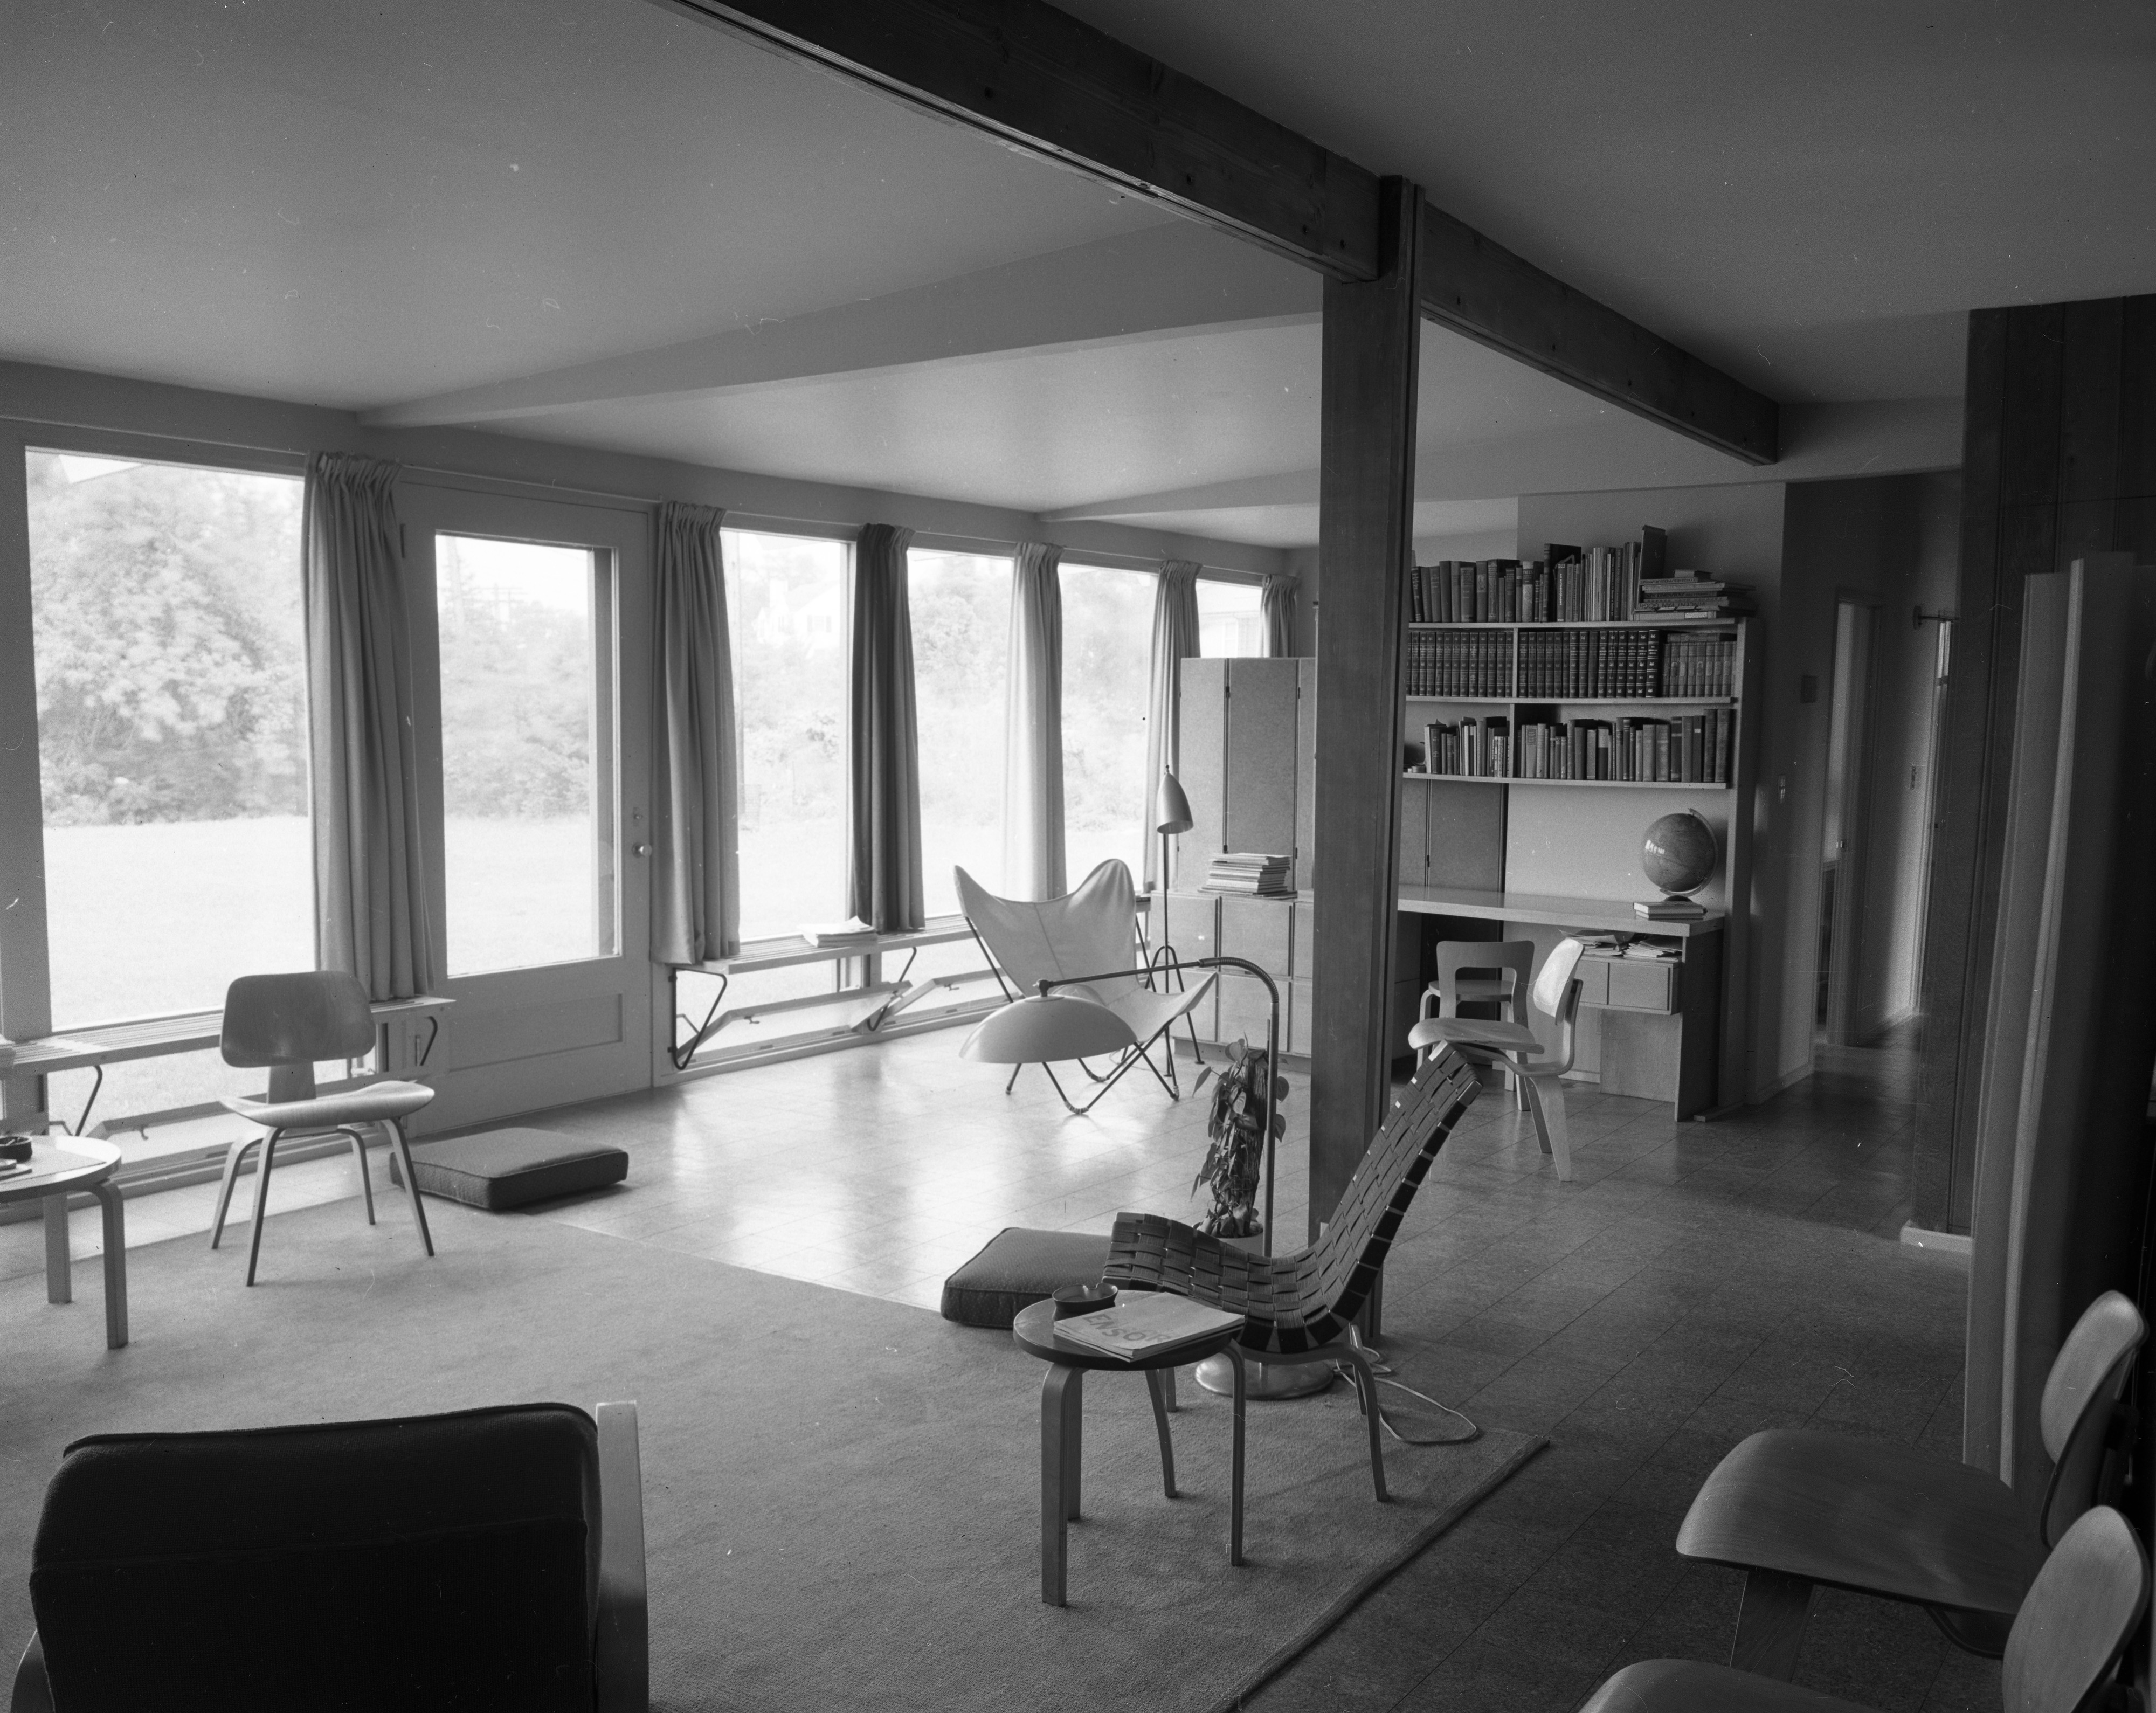 Windows Dominate Architect Richard M. Robinson Home On Huron View Blvd., July 1952 image